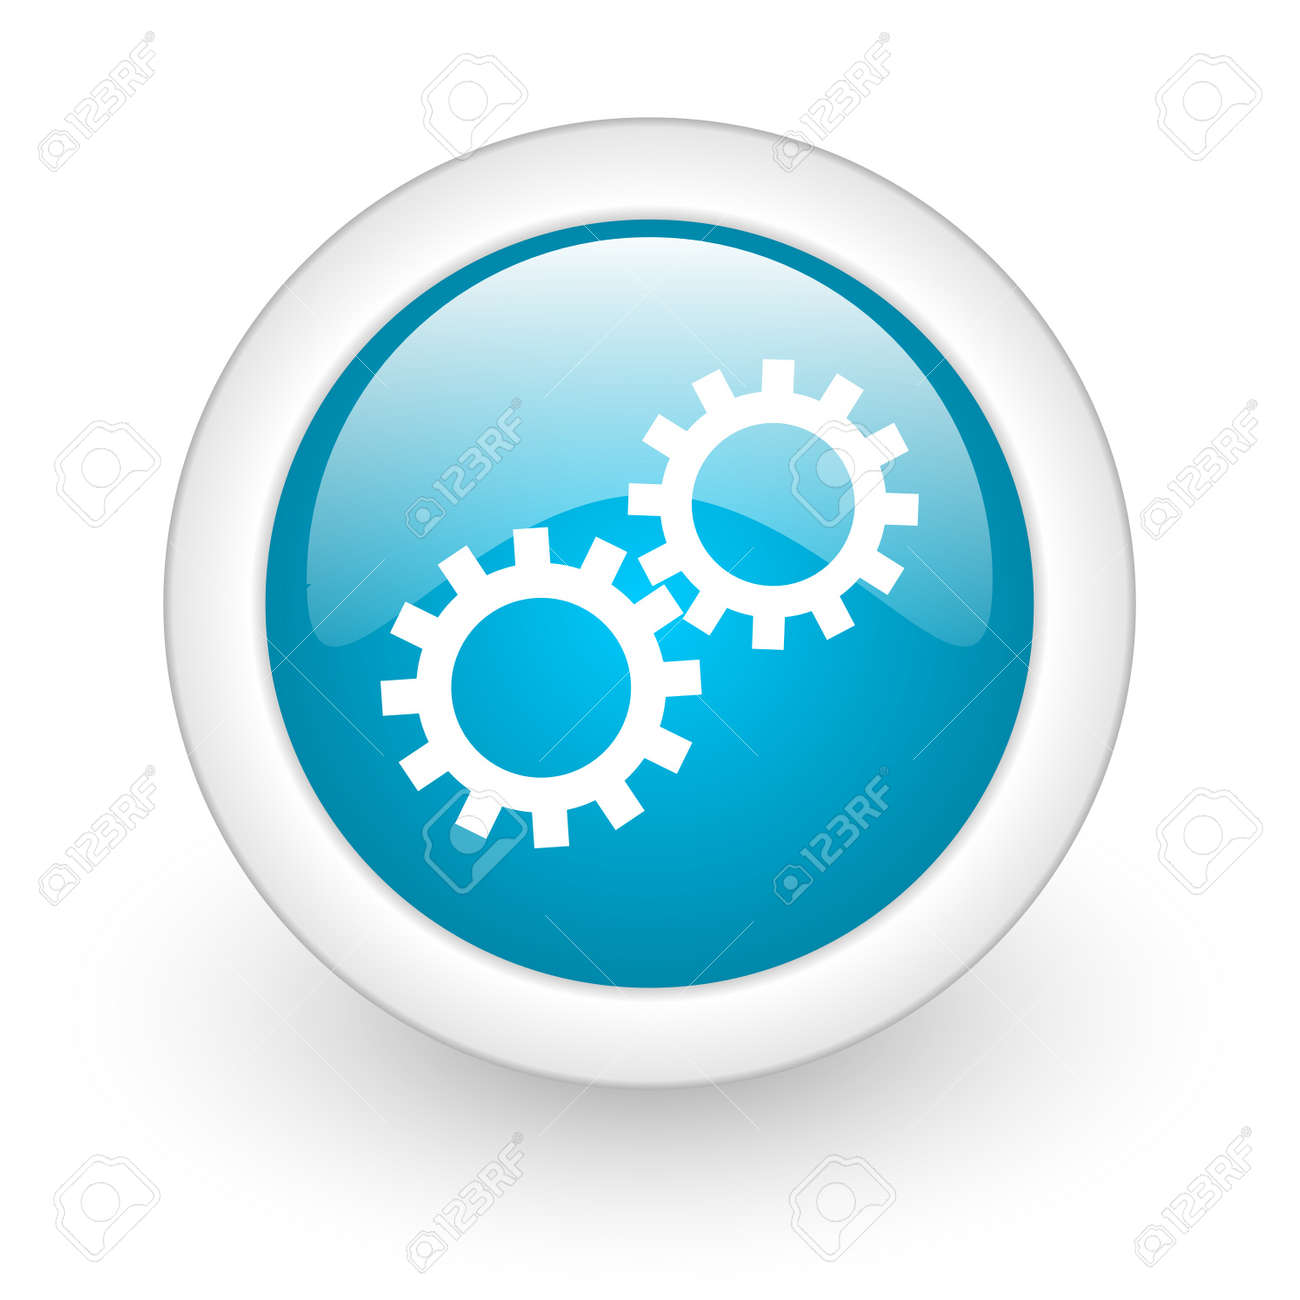 gears web button Stock Photo - 11872077